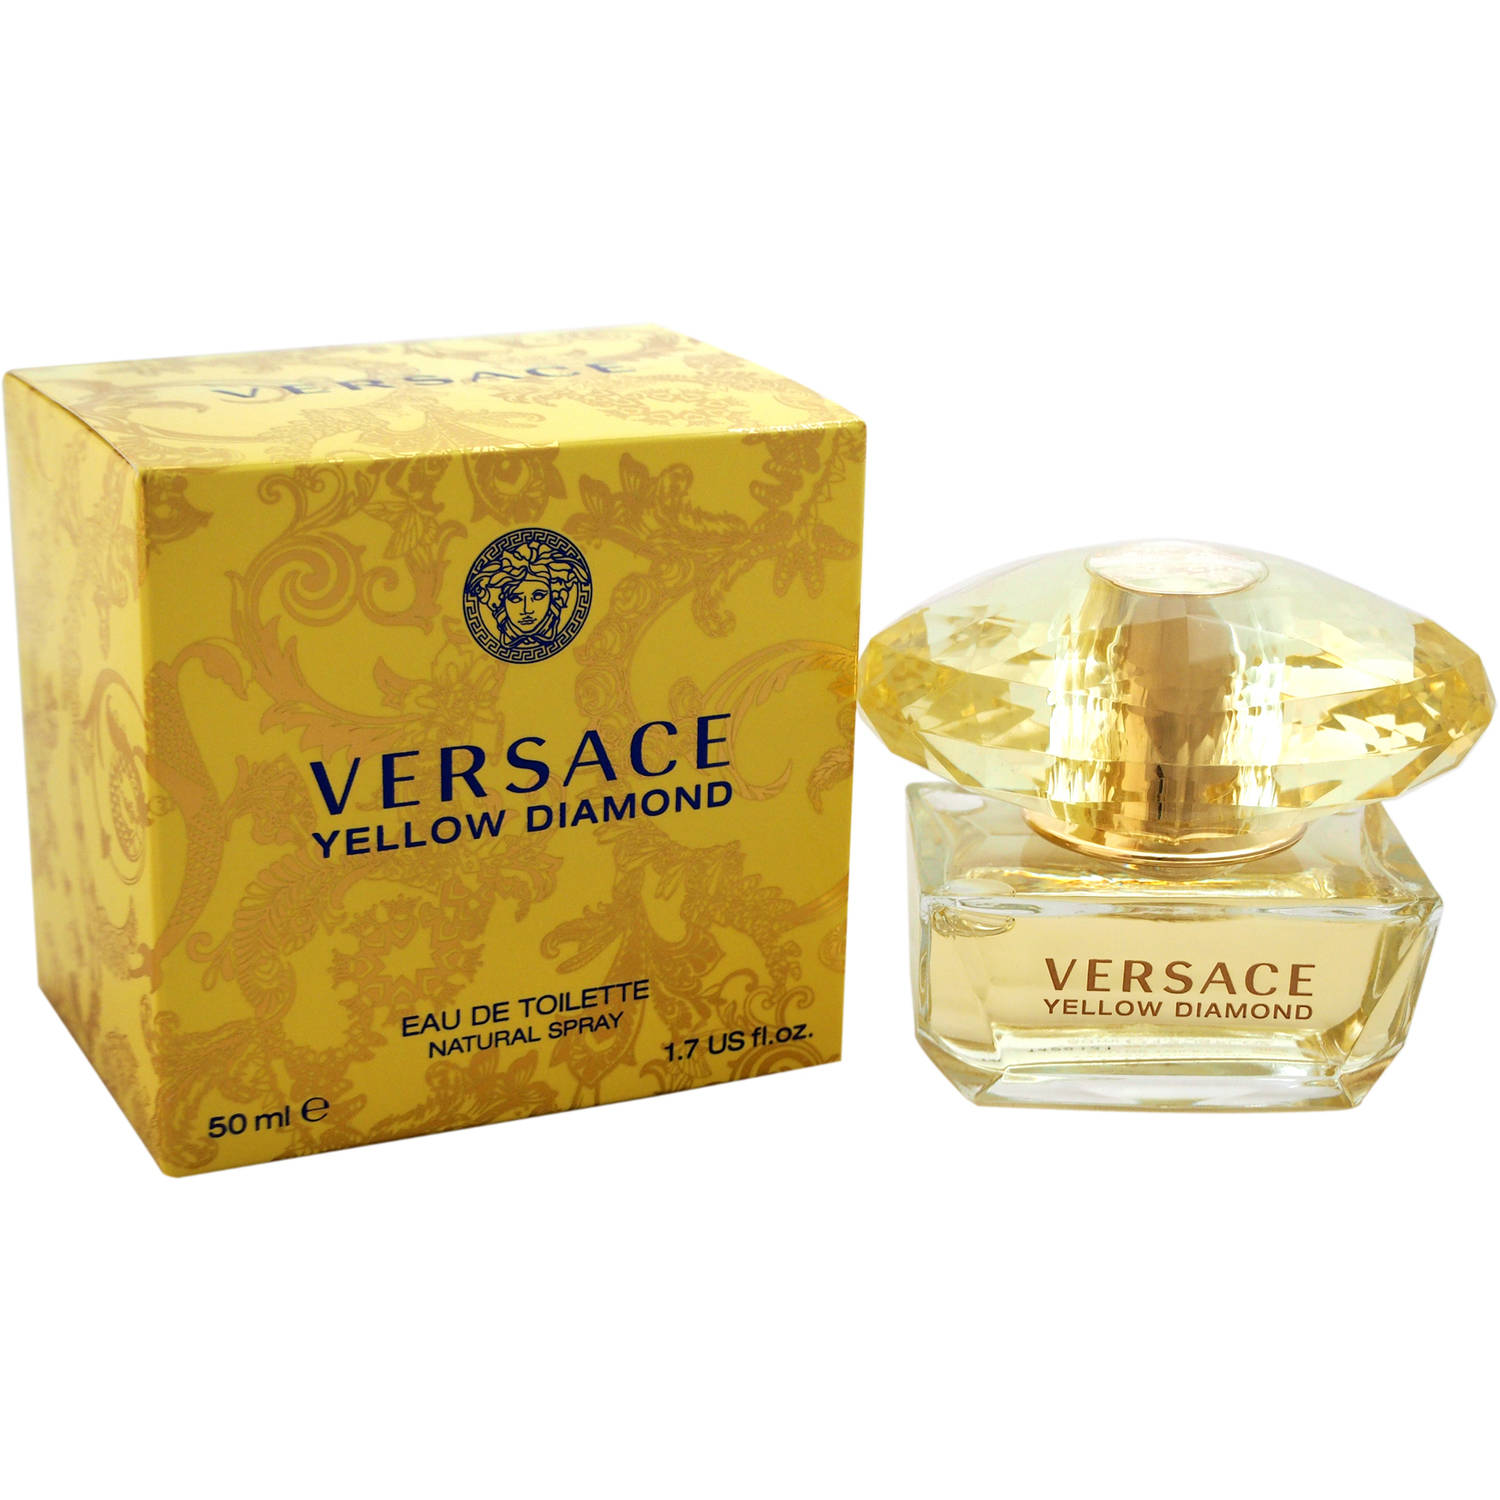 Versace Yellow Diamond for Women Eau de Toilette, 1.7 oz